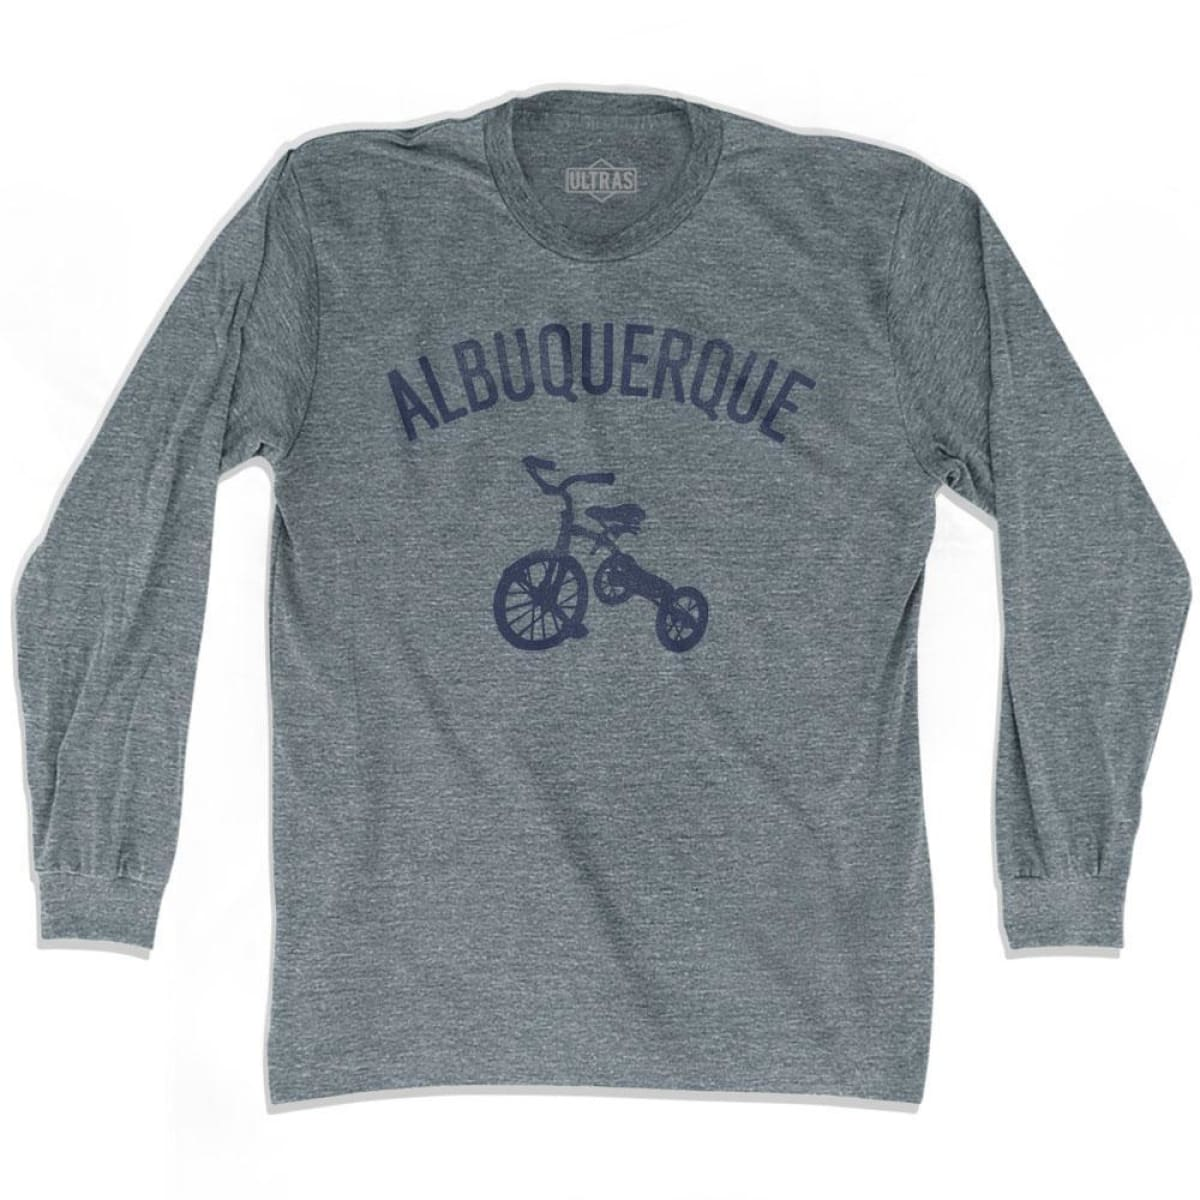 Albuquerque City Tricycle Adult Tri-Blend Long Sleeve T-shirt - Tricycle City